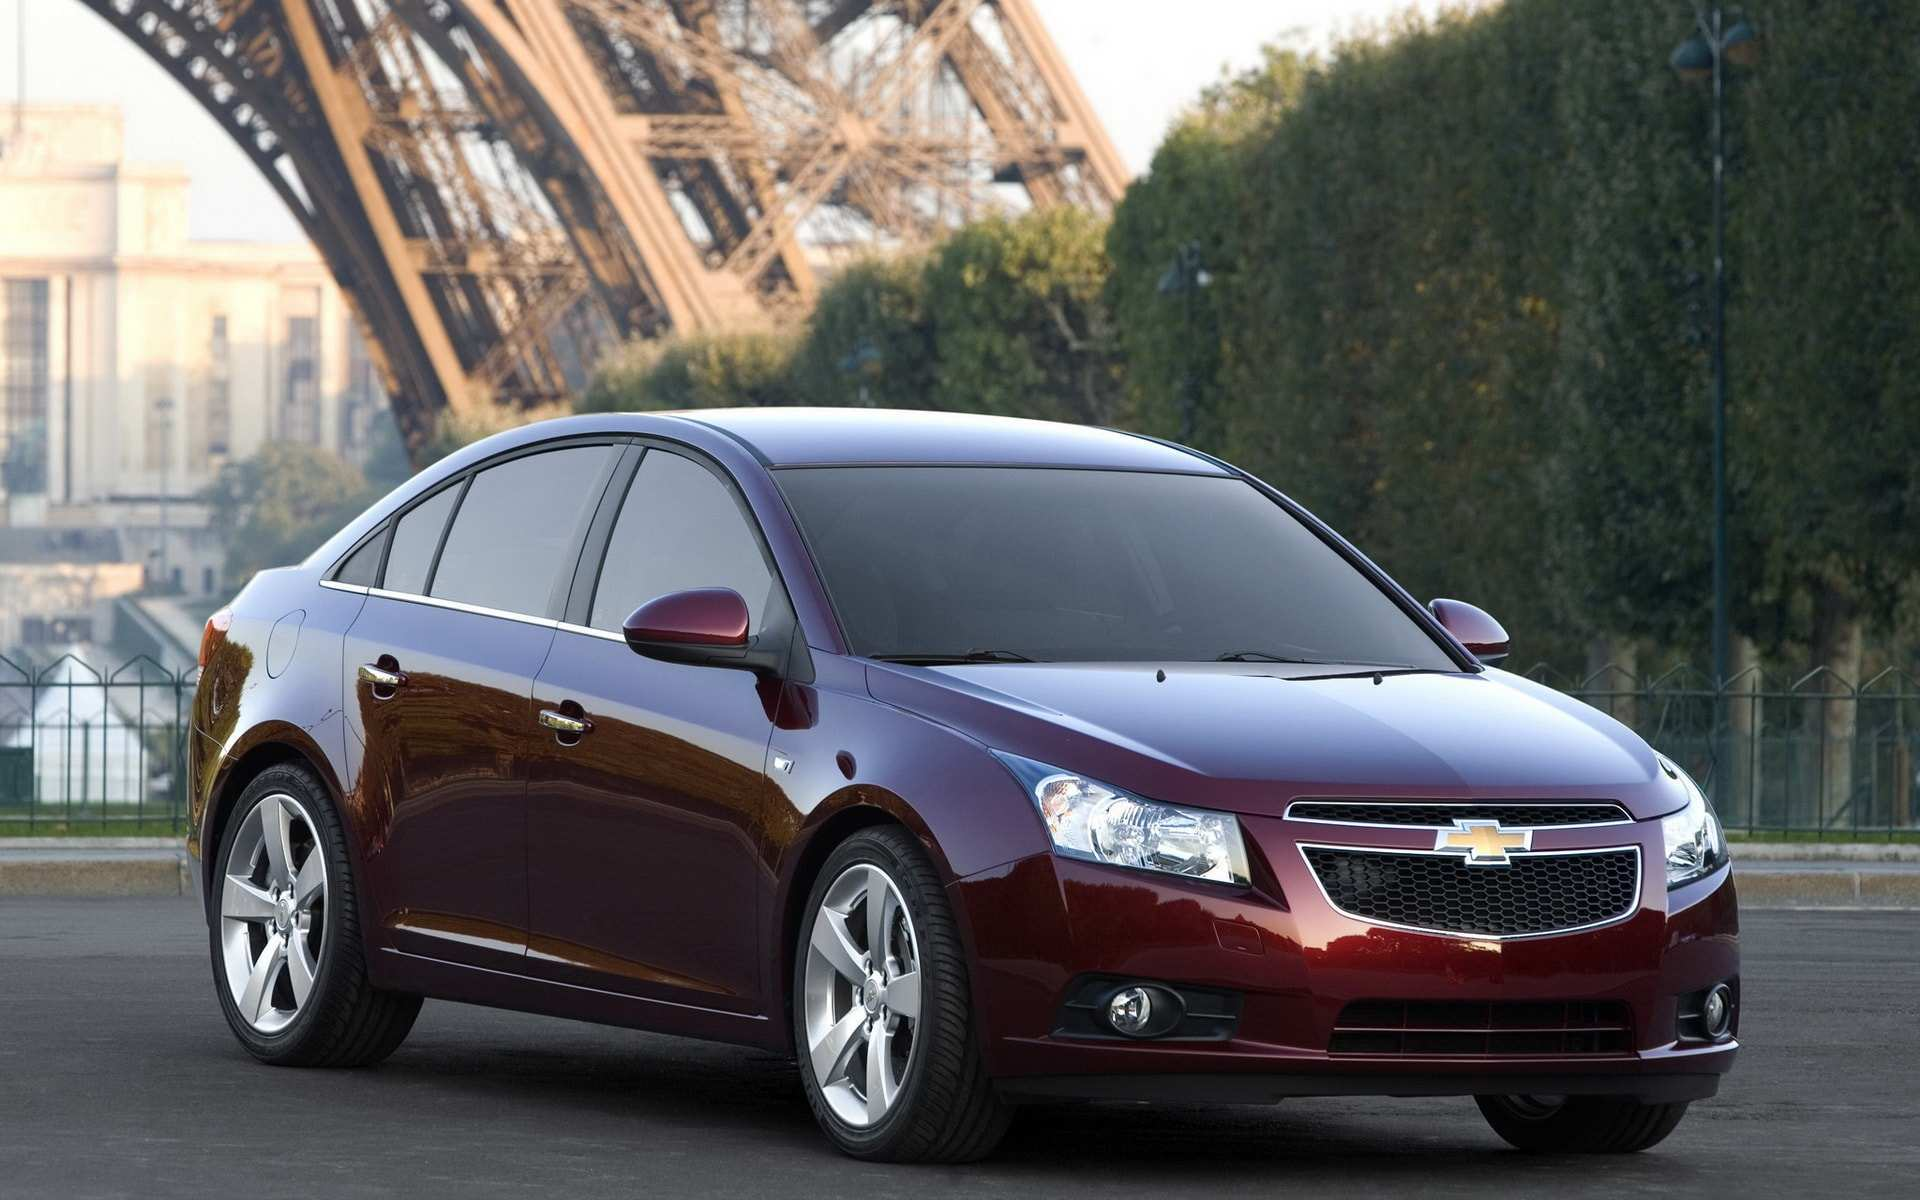 96 Gallery of Chevy Cruze Wallpapers Release Date by Chevy Cruze Wallpapers